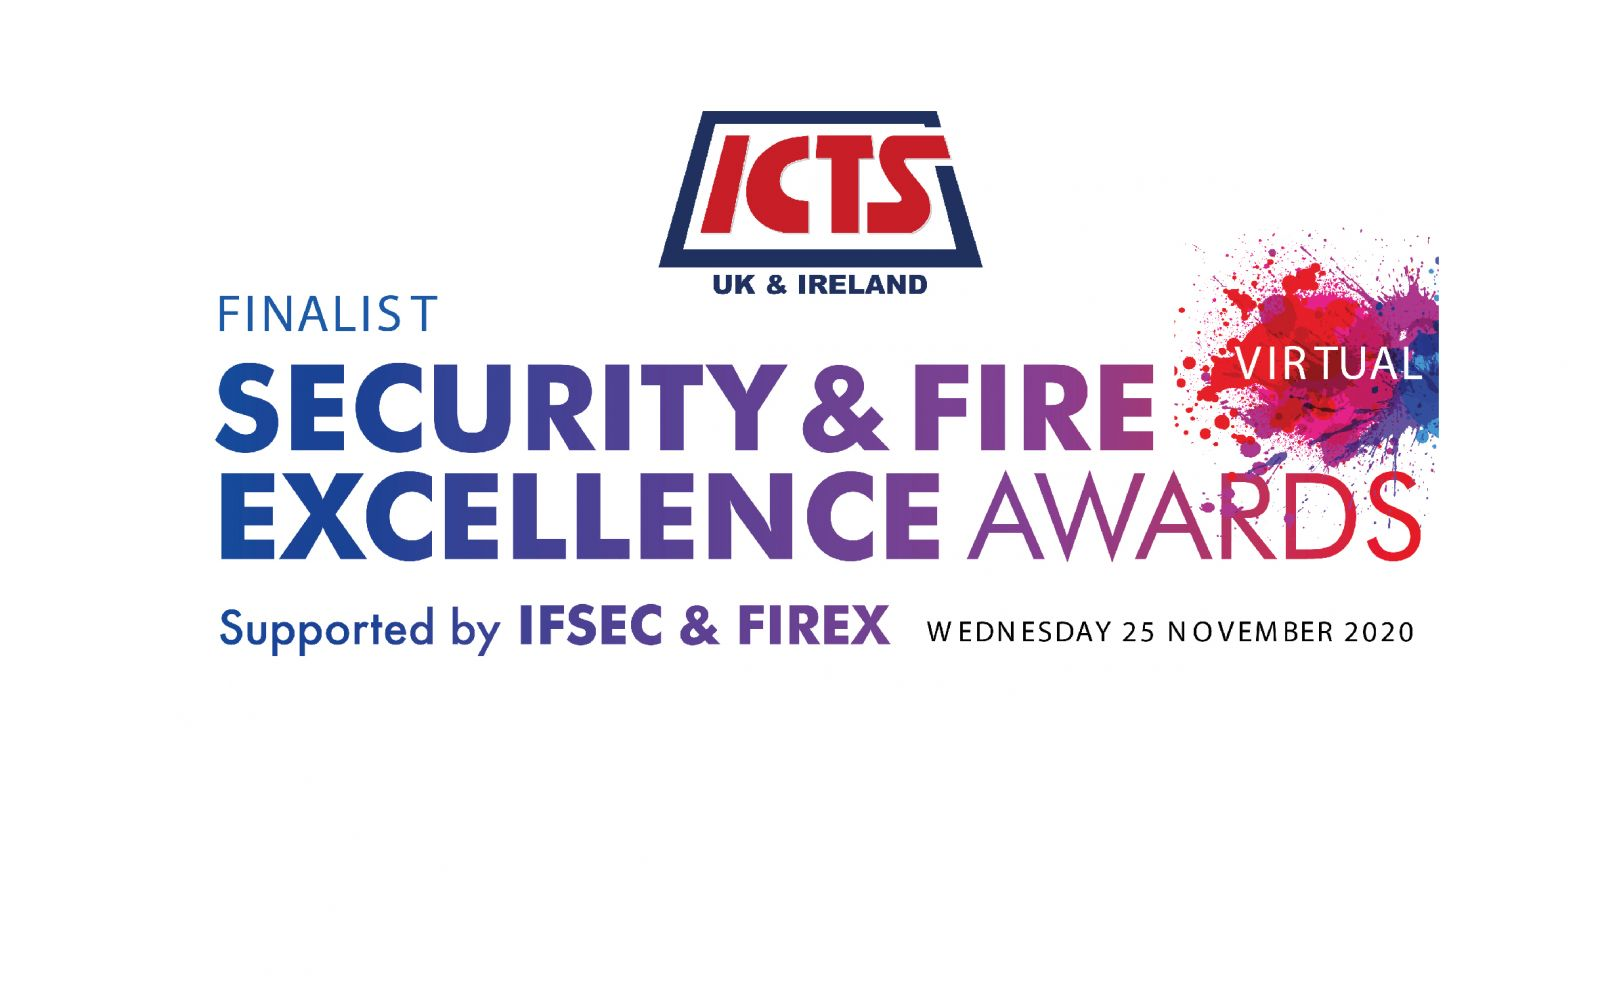 2020 Security & Fire Excellence Awards Finalists